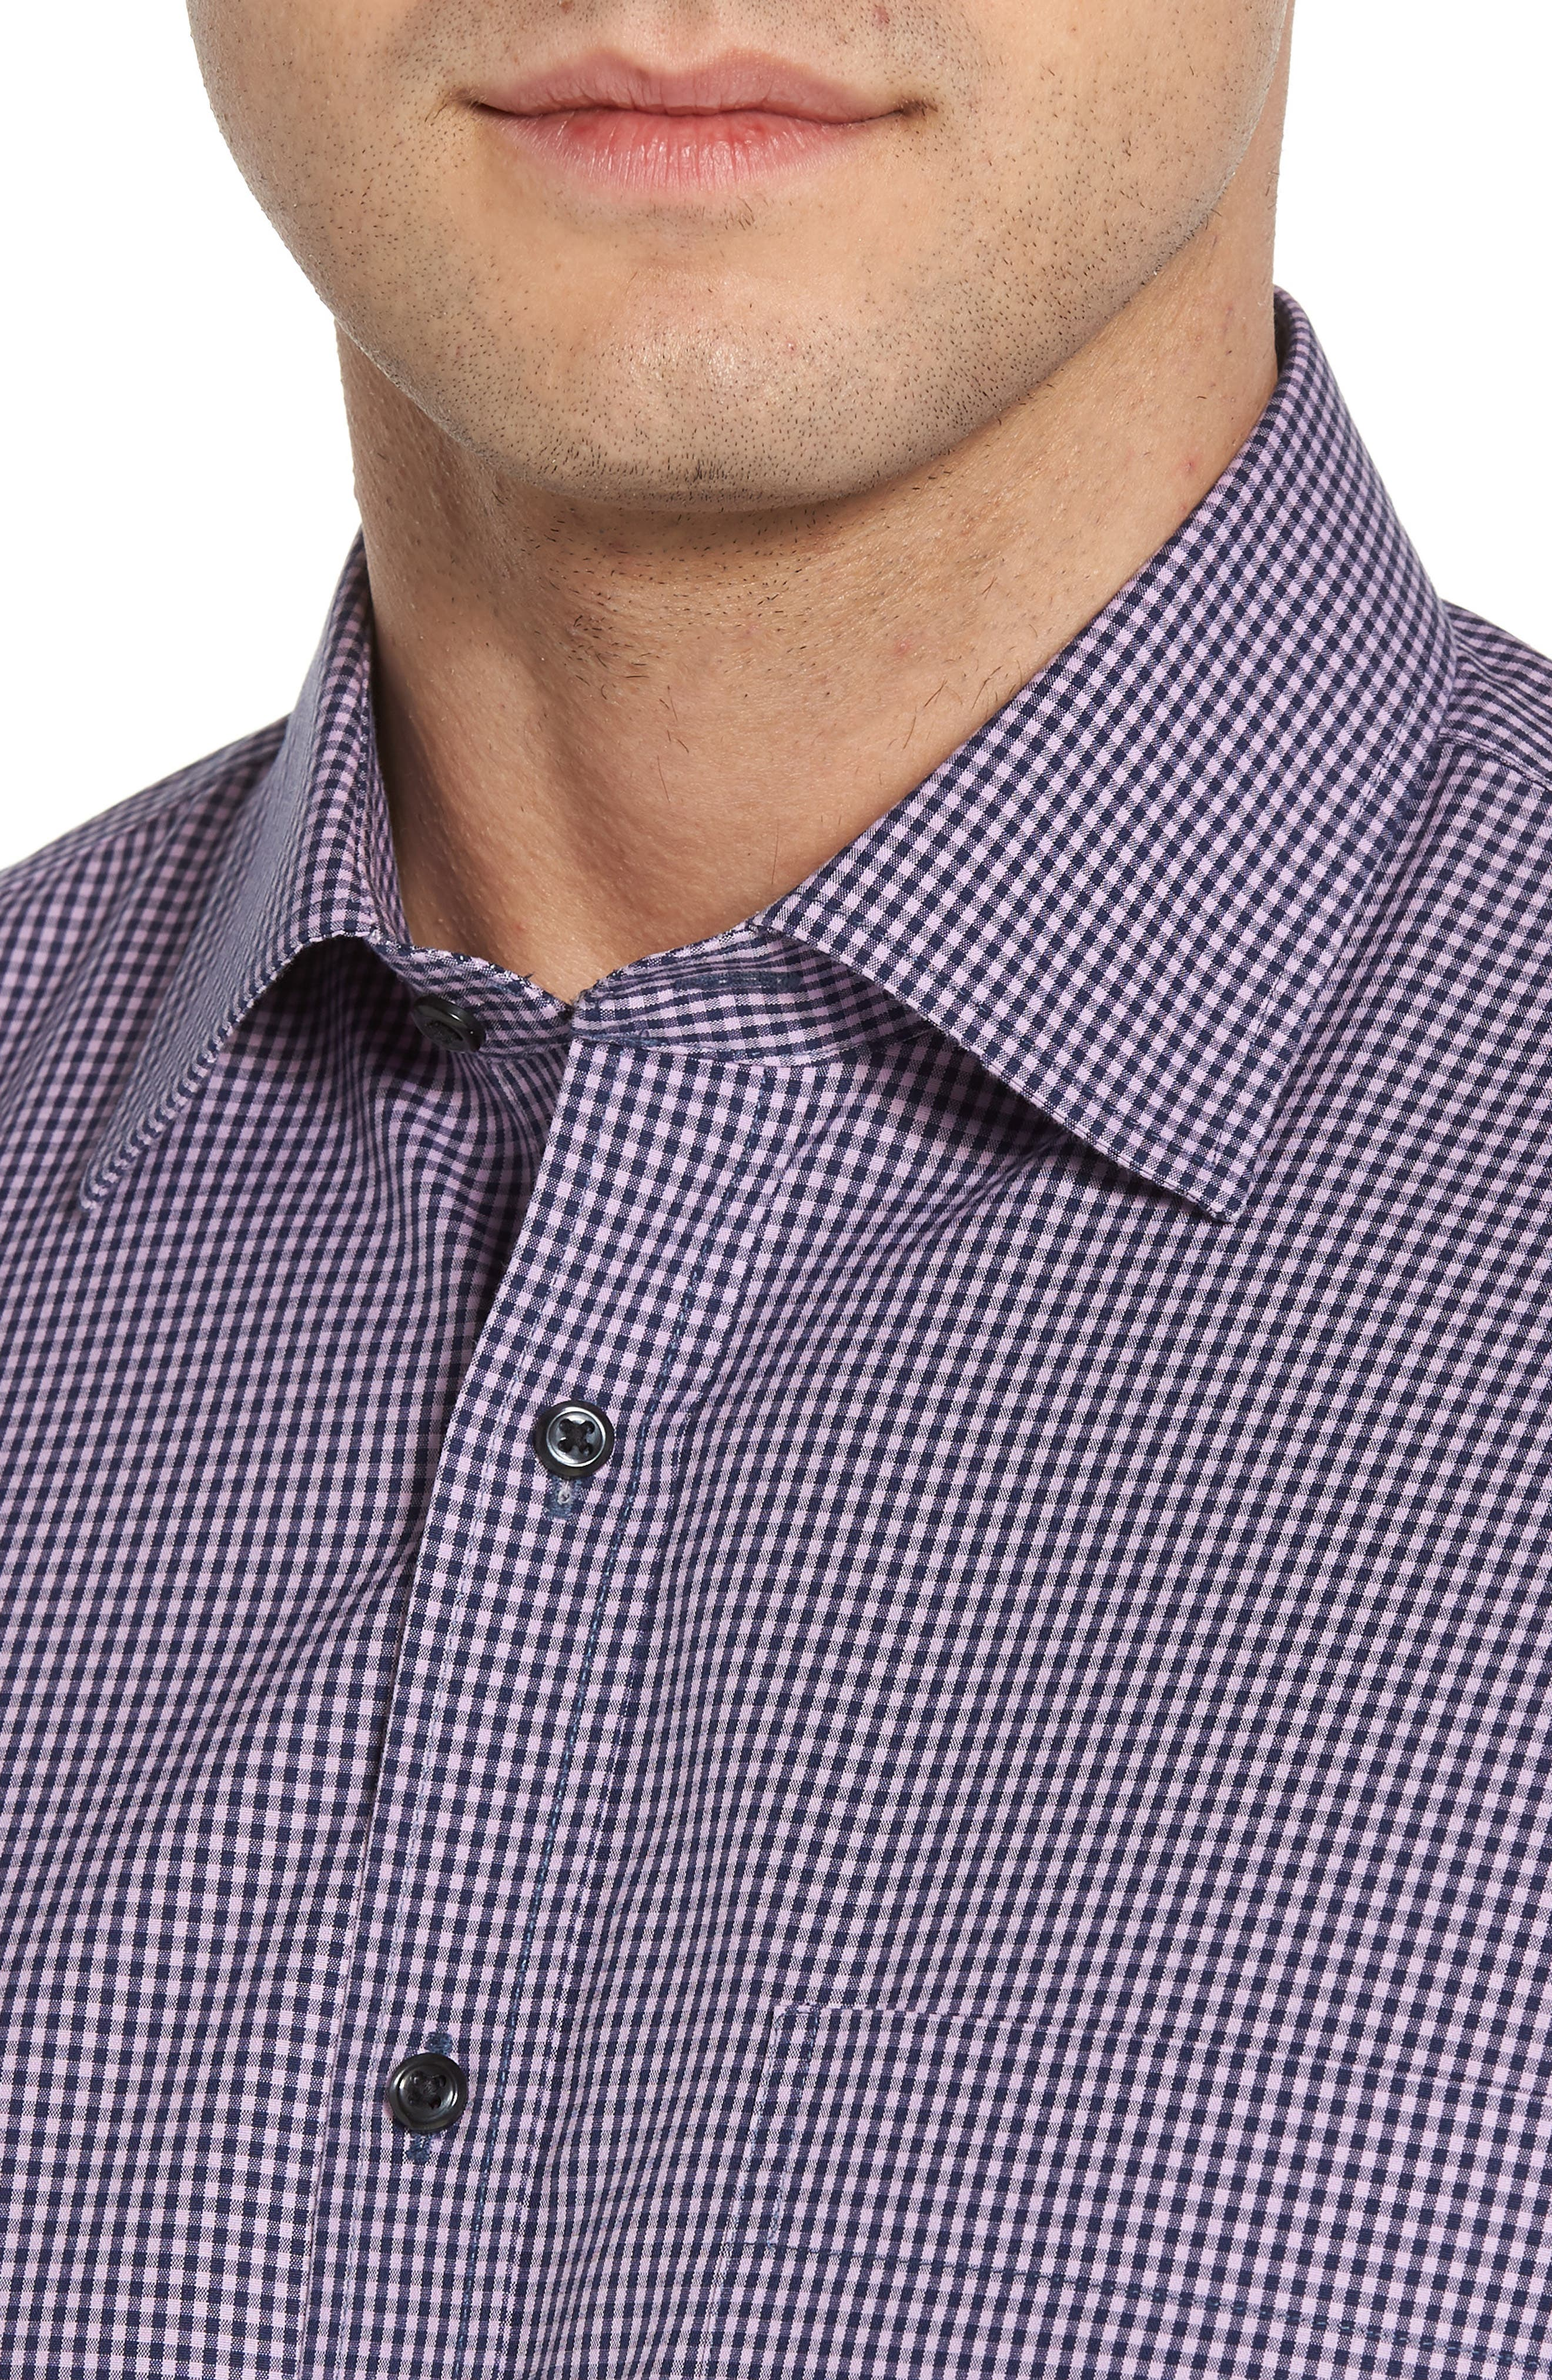 Smartcare Classic Fit Check Dress Shirt,                             Alternate thumbnail 7, color,